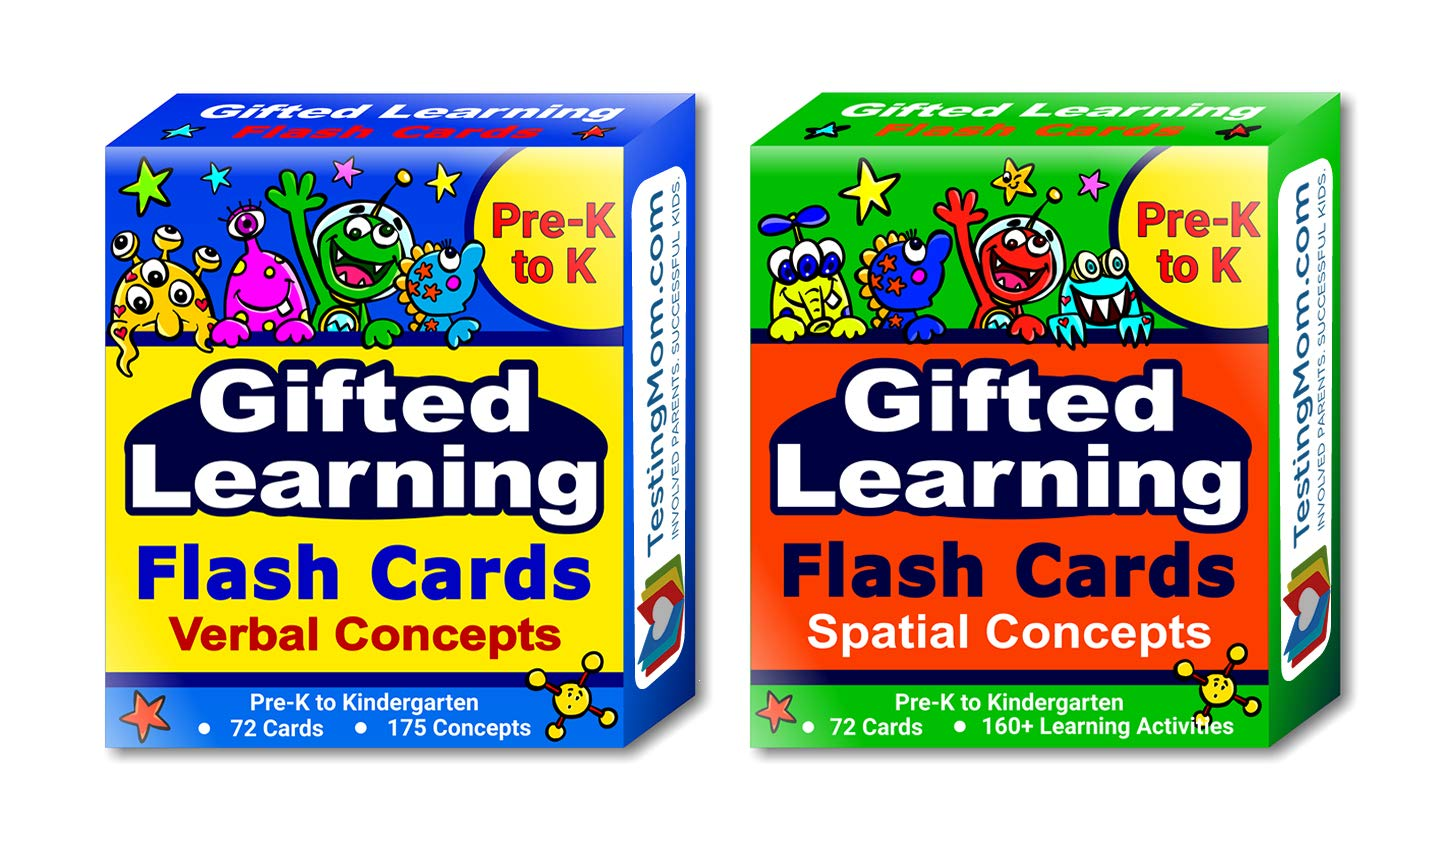 Gifted Learning Flash Cards (2-Pack) - Verbal and Spatial Concepts for Pre-K - Kindergarten - Practice for CogAT test, OLSAT test, NNAT test, NYC Gifted and Talented, ITBS test, WISC, WPPSI, AABL